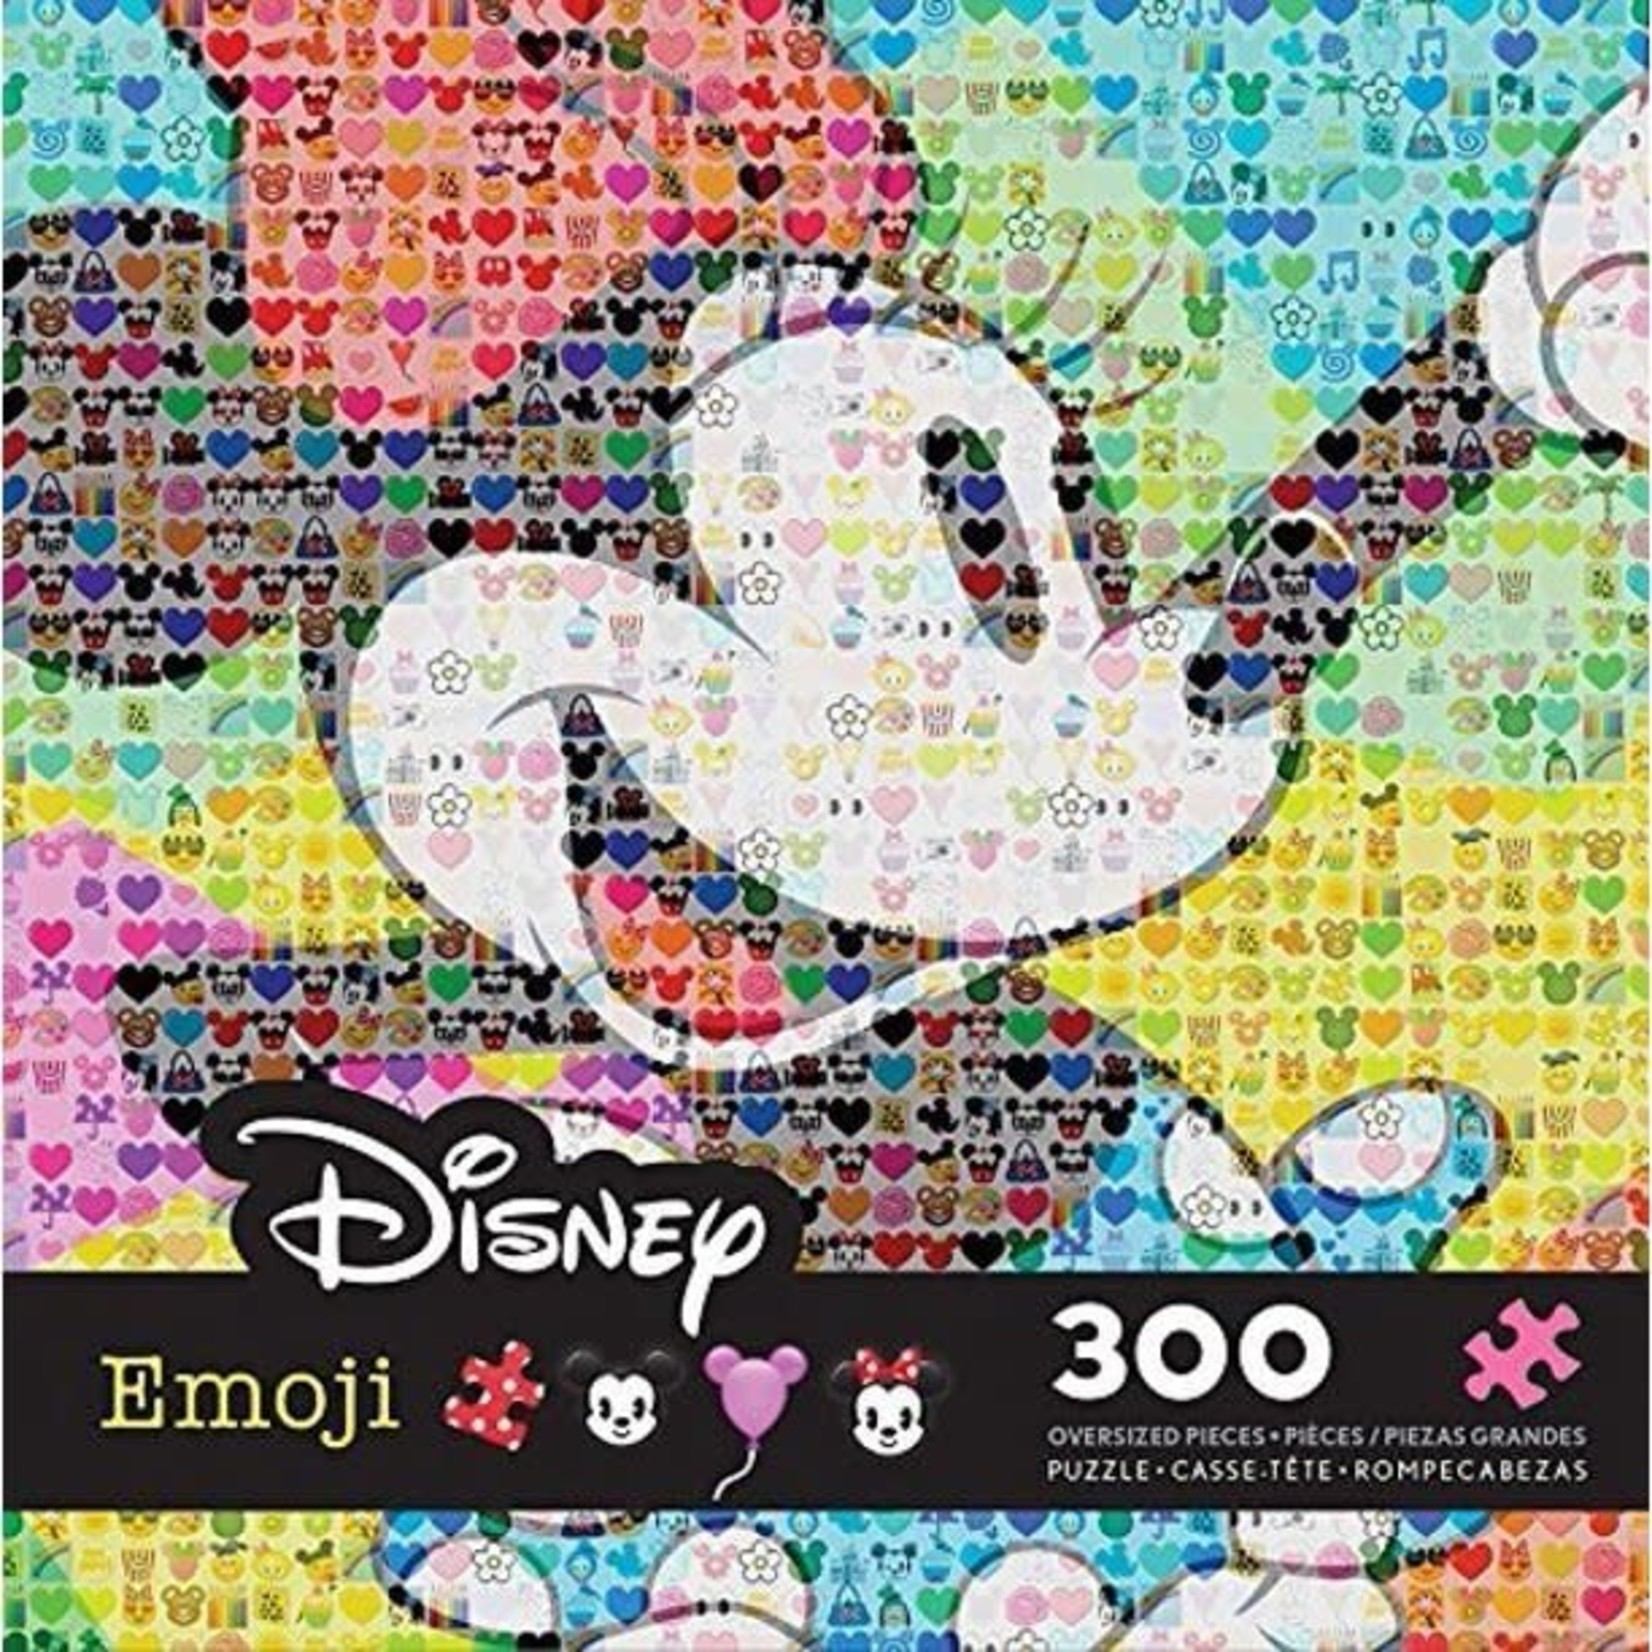 ceaco Ceaco - 300 Piece Puzzle: Disney Collection - Minnie Emoji